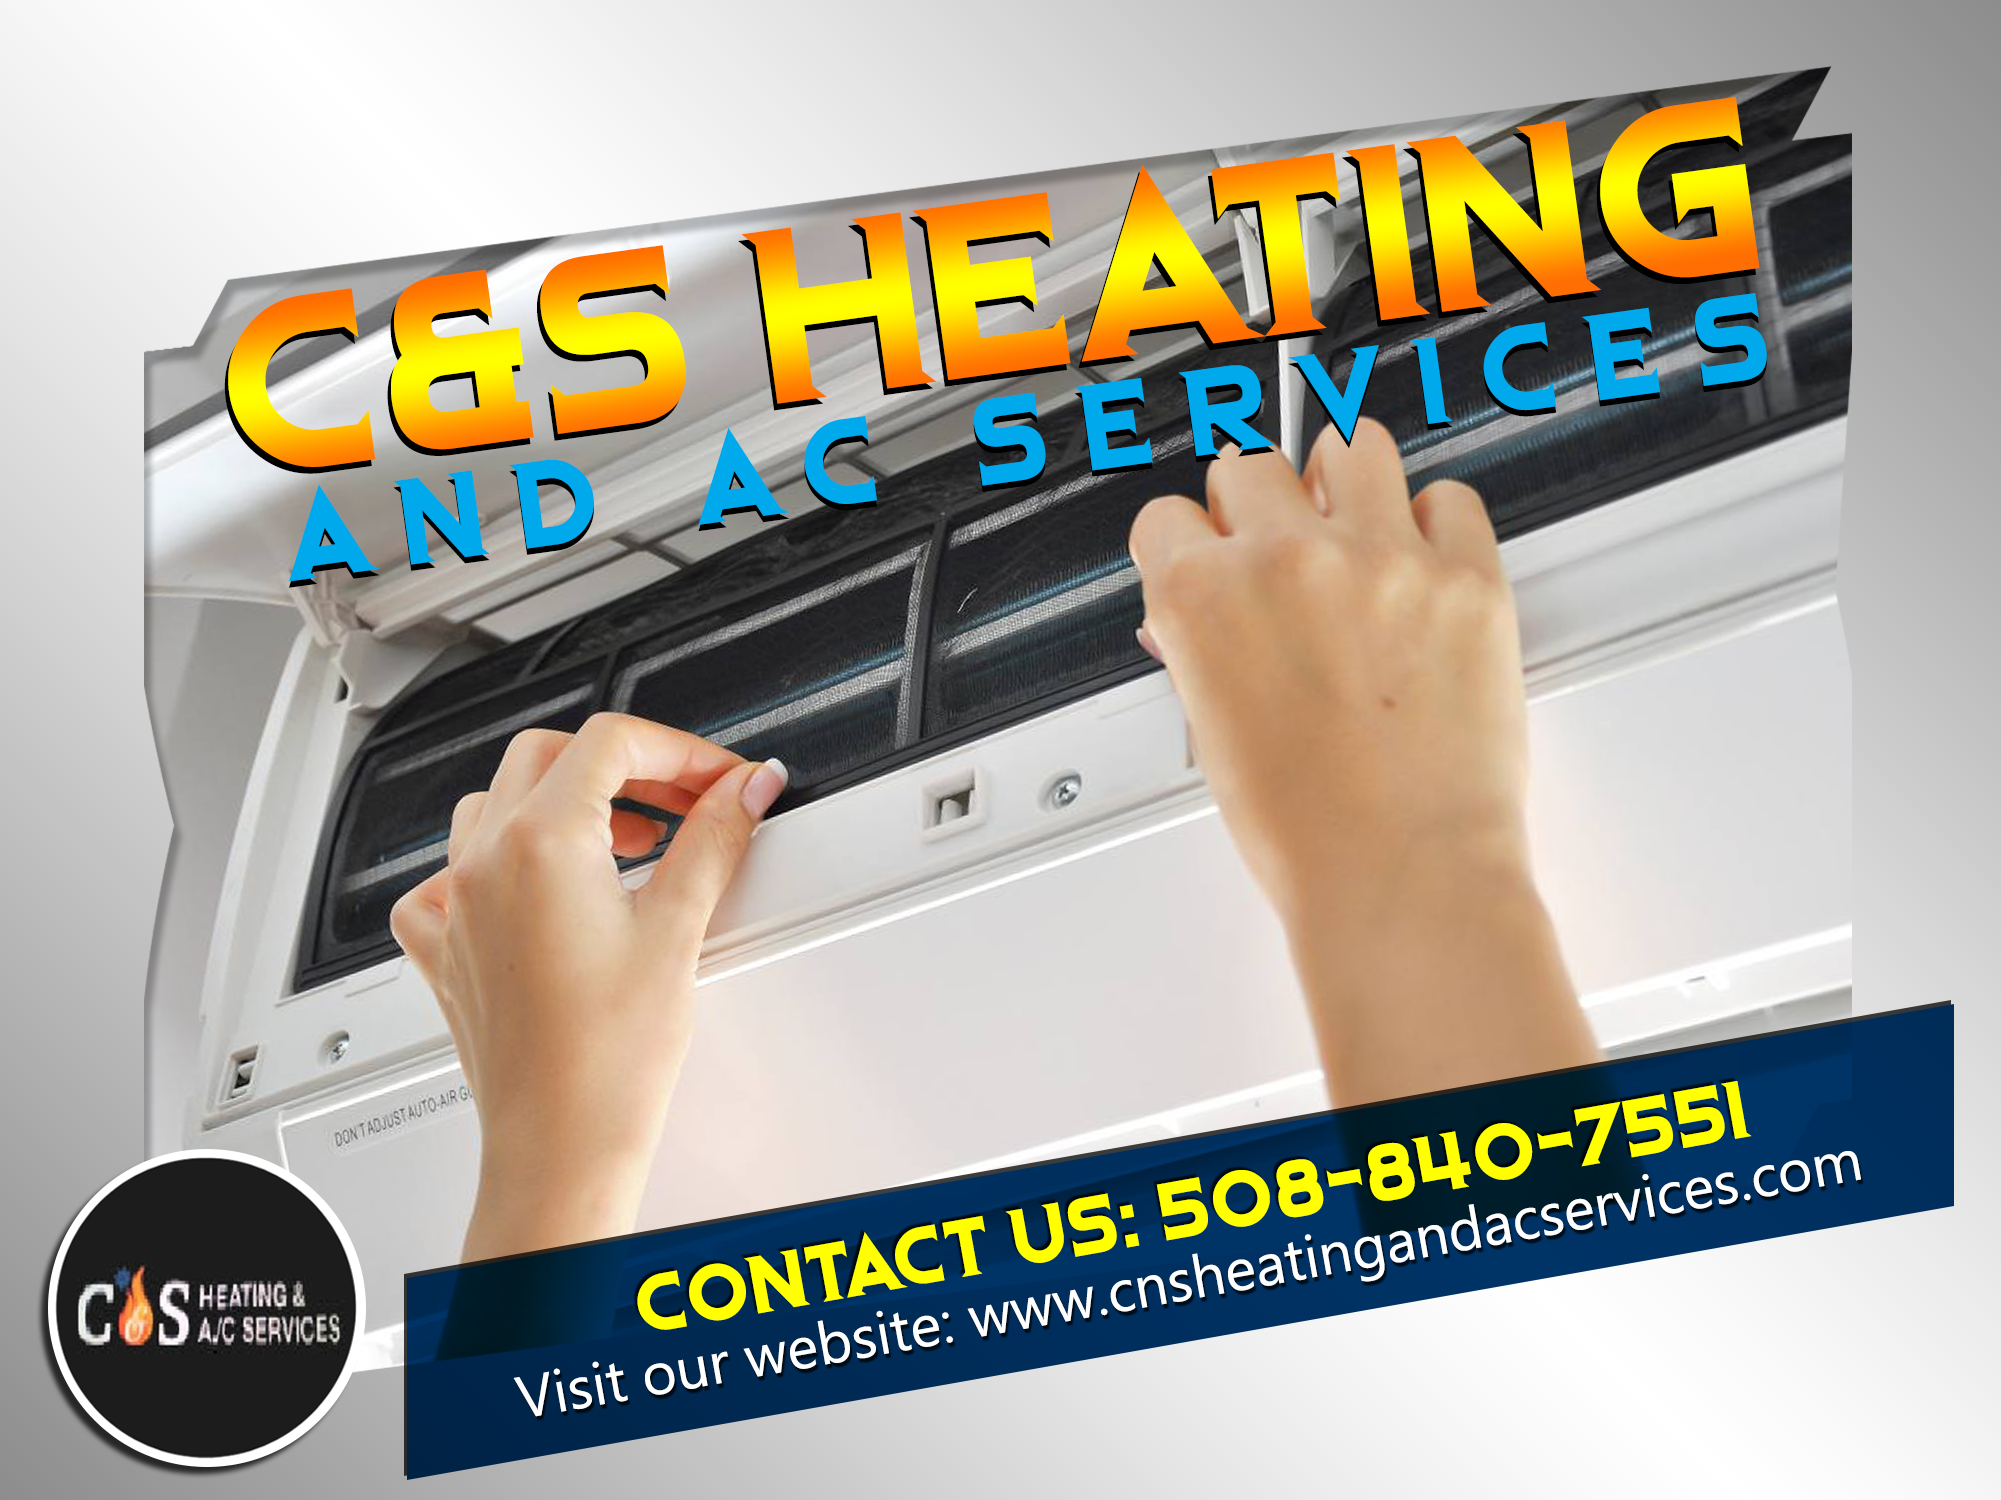 Our Technicians Will Always Treat You And Your Home With Respect